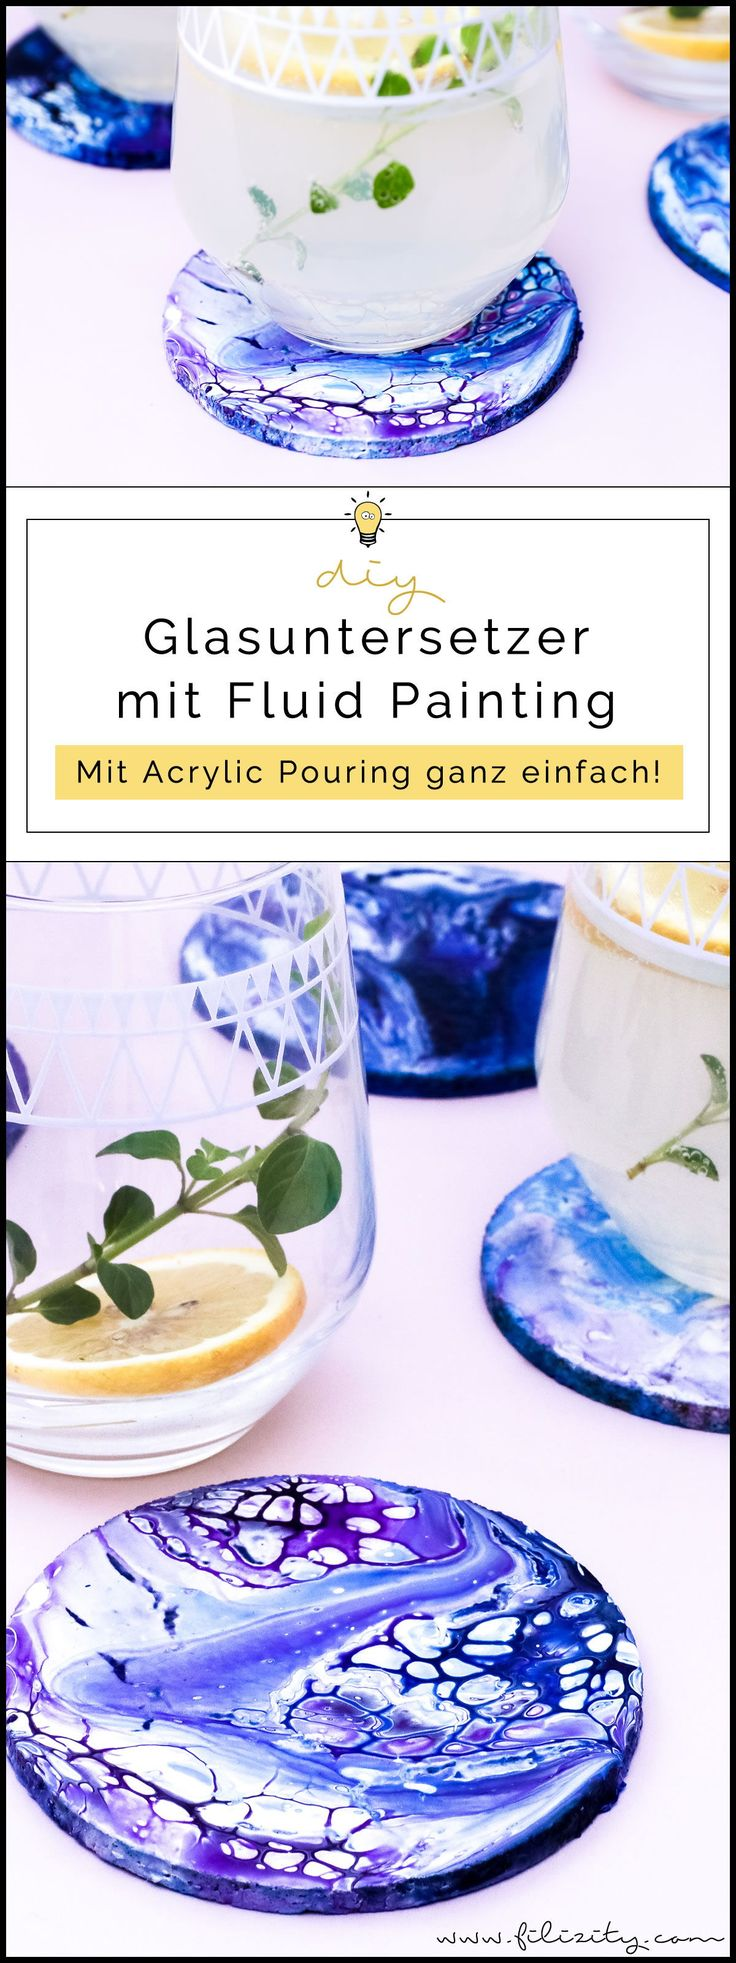 Acrylic Pouring: DIY Glasuntersetzer mit abstrakter Malerei (Fluid Painting) selber machen | Filizity.com | DIY-Blog aus dem Rheinland #acrylicpouring #kunst #upcycling